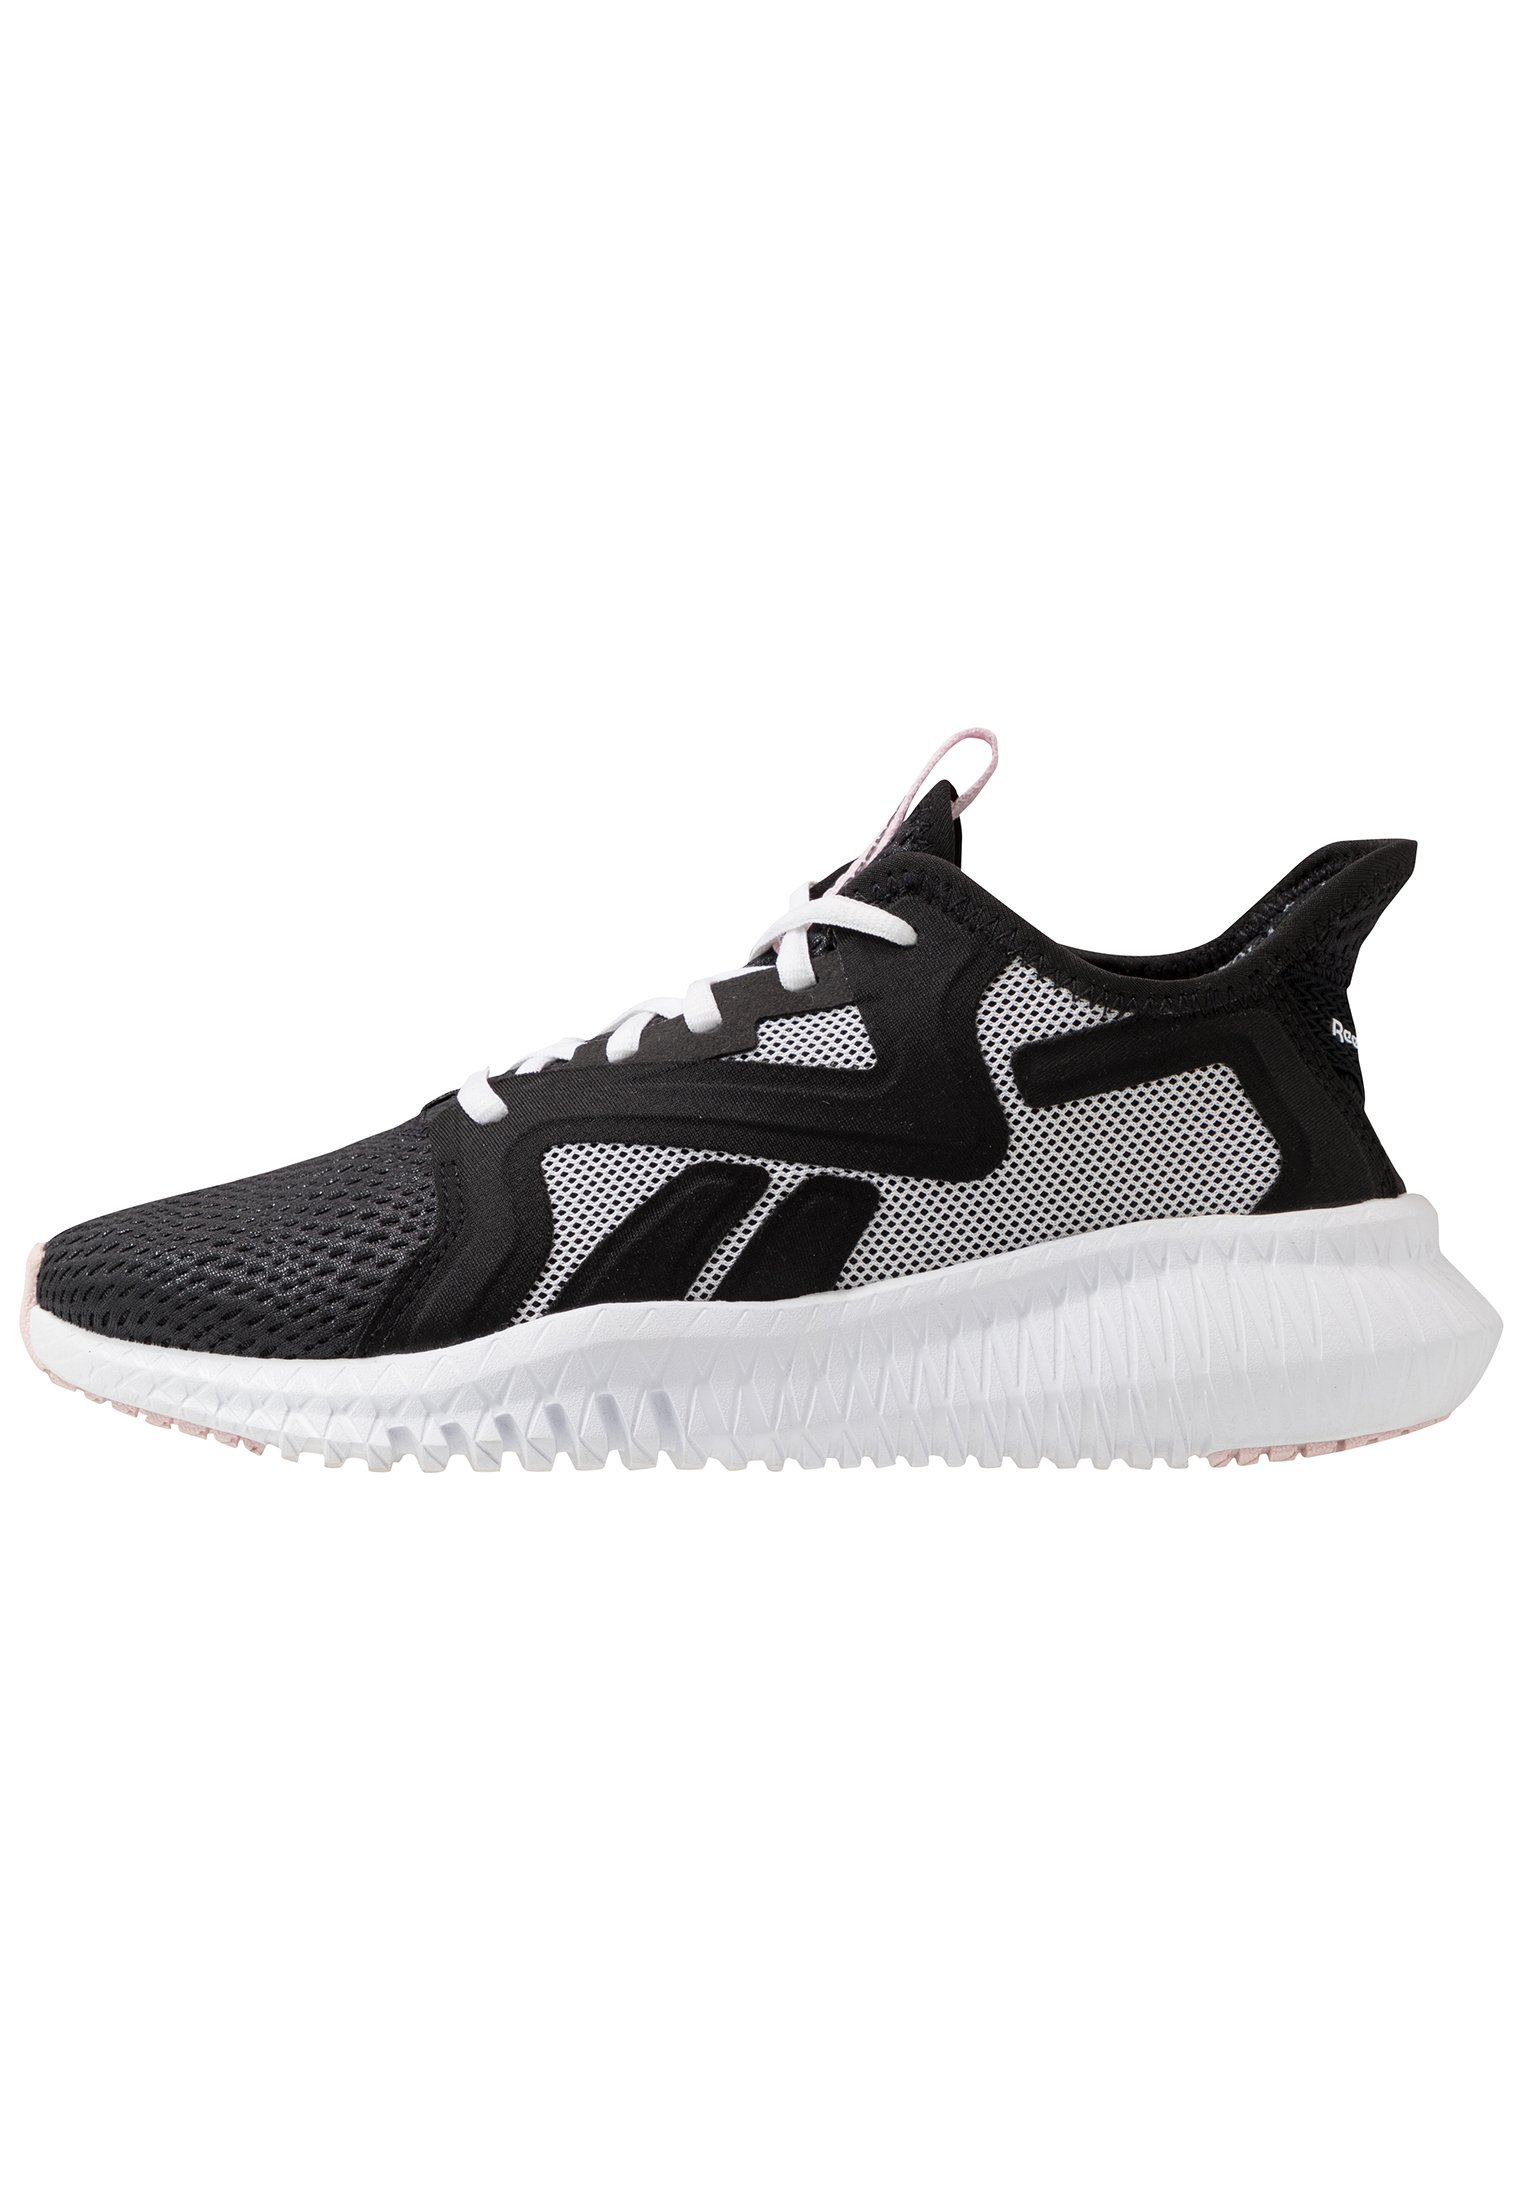 Reebok women's shoes online | Latest collections from top